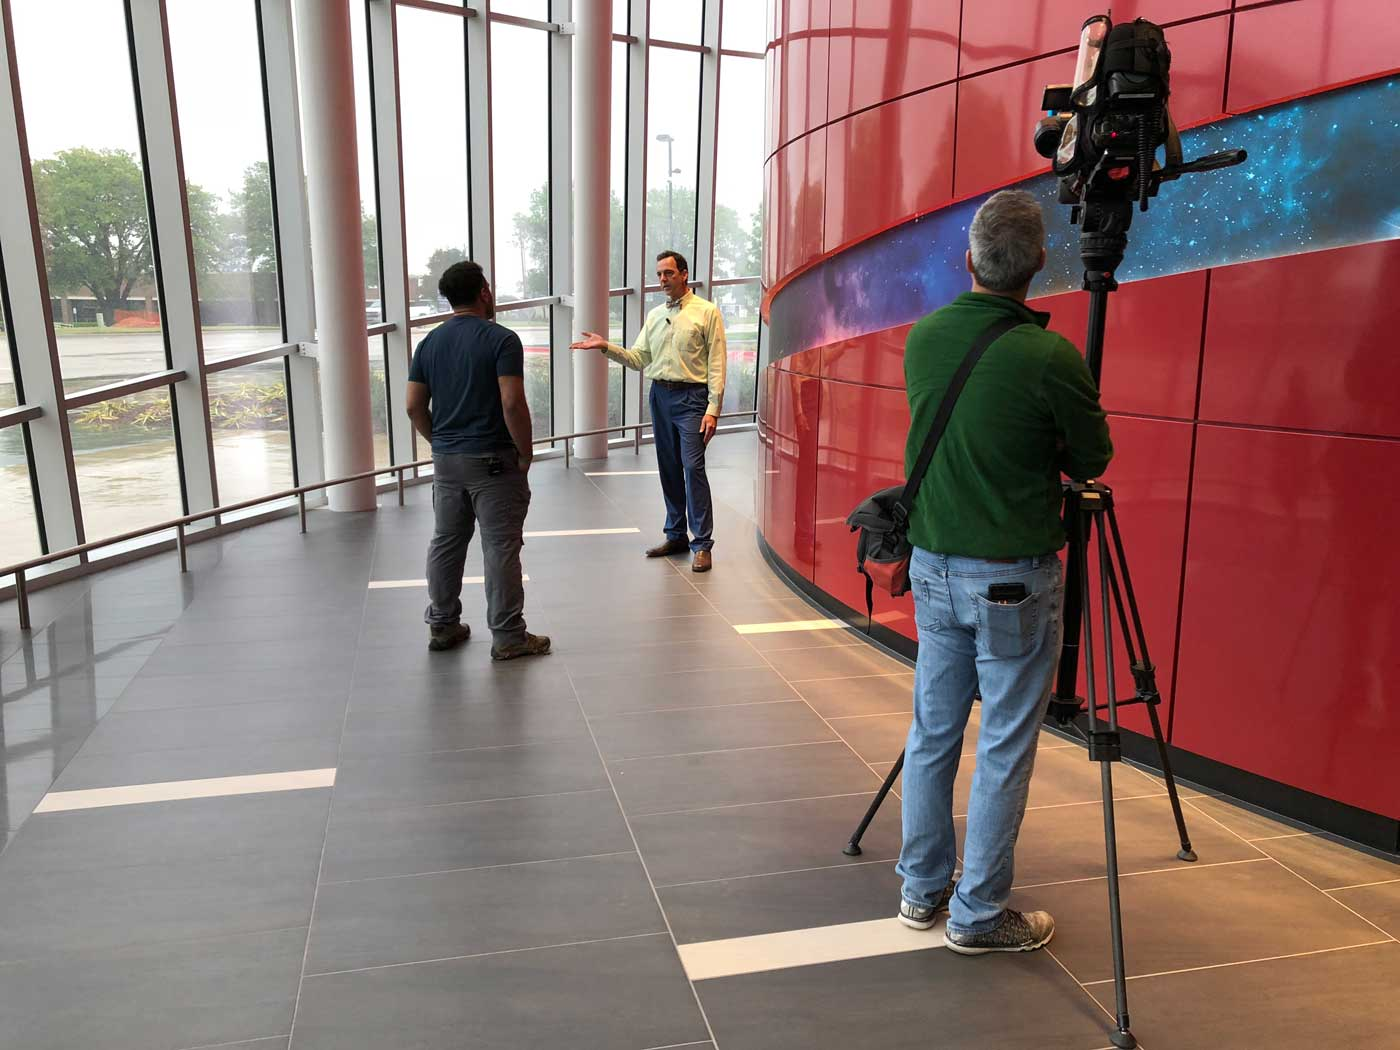 WFAA News Highlights the ICR Discovery Center